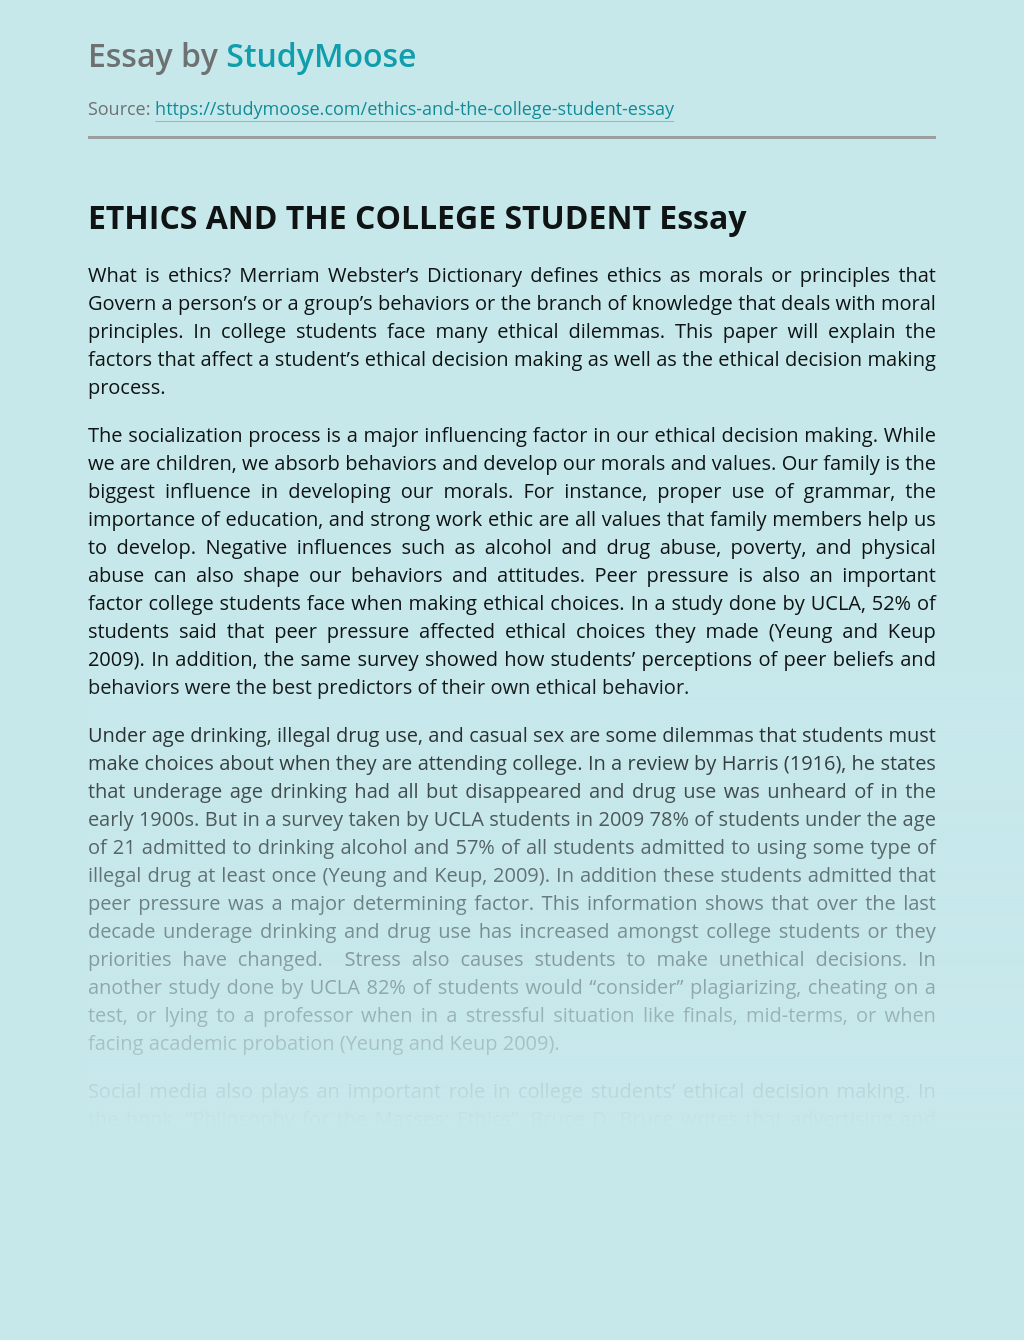 ETHICS AND THE COLLEGE STUDENT